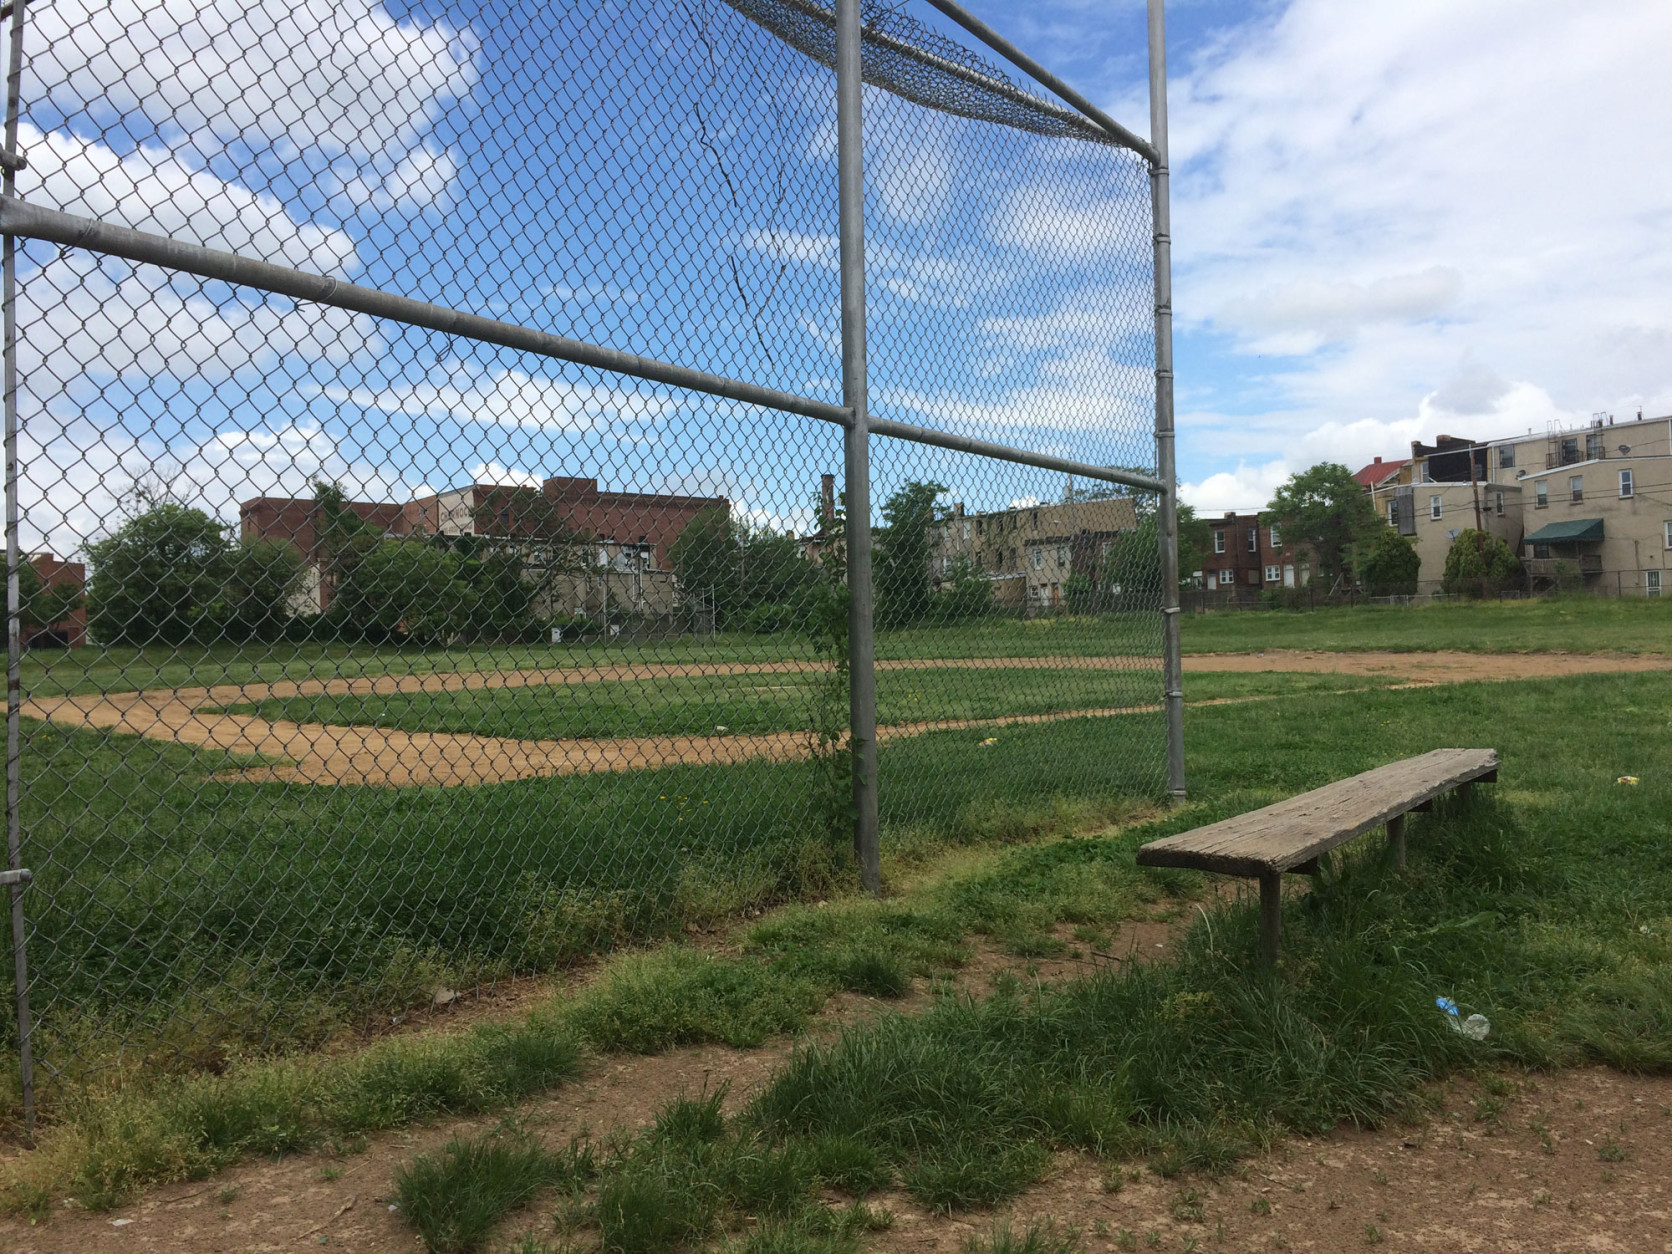 A pair of baseball fields at a youth center in the Upton neighborhood are overgrown and unkempt, as tee ball season doesn't begin until mid-May. (WTOP/Noah Frank)